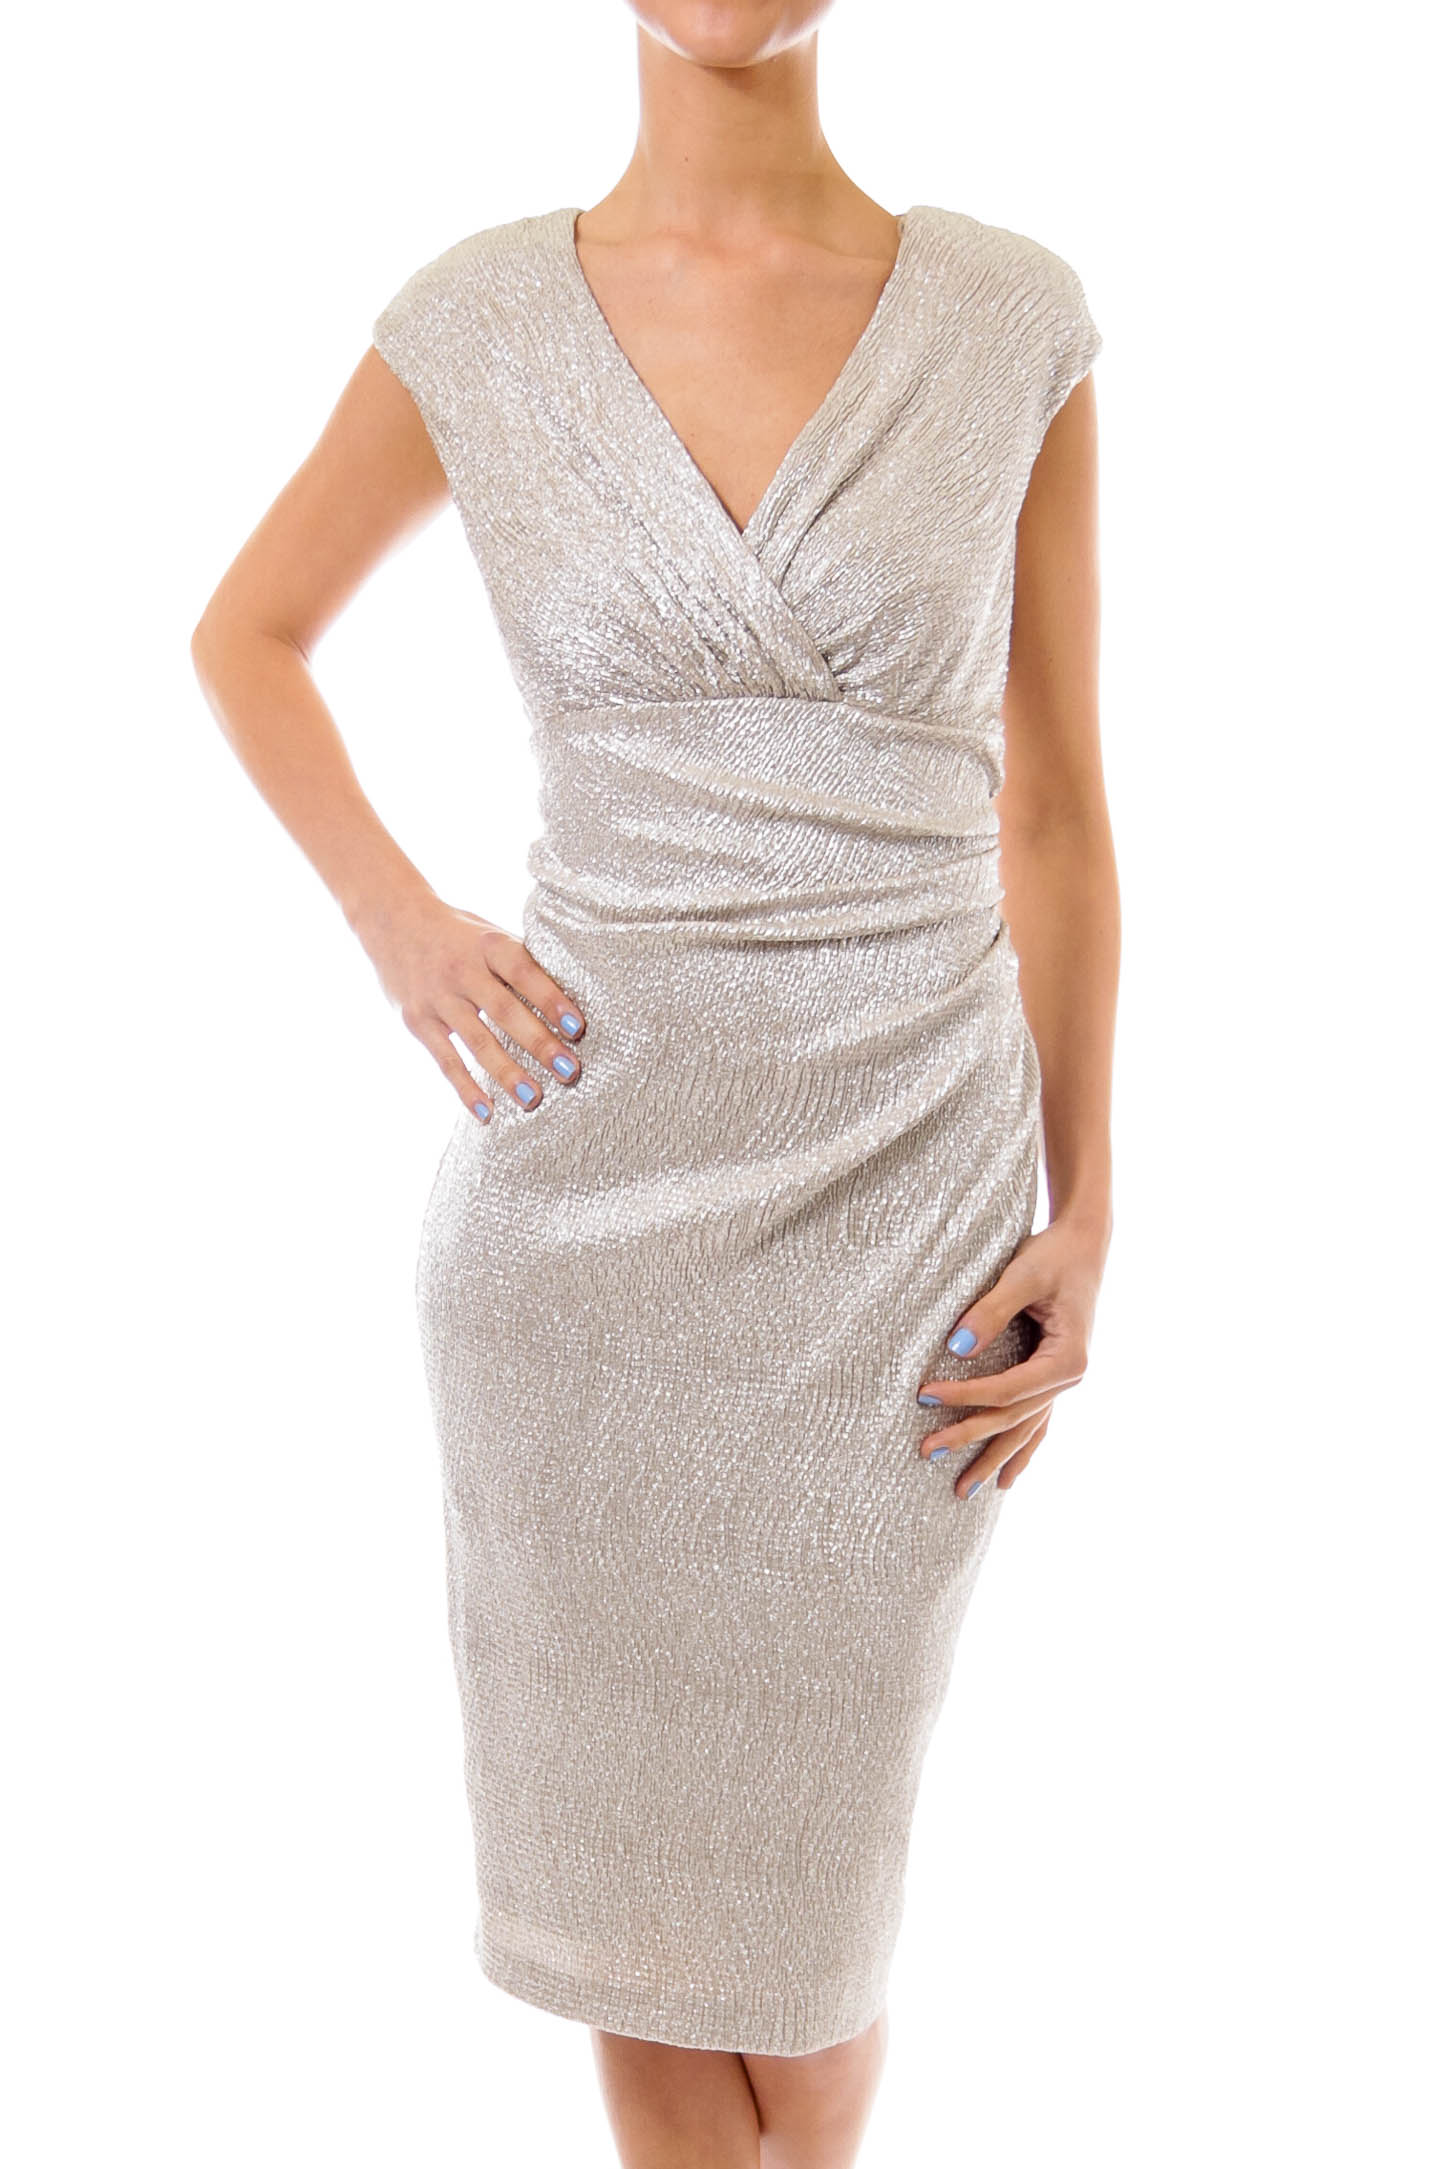 Ivory Metallic Empire Dress